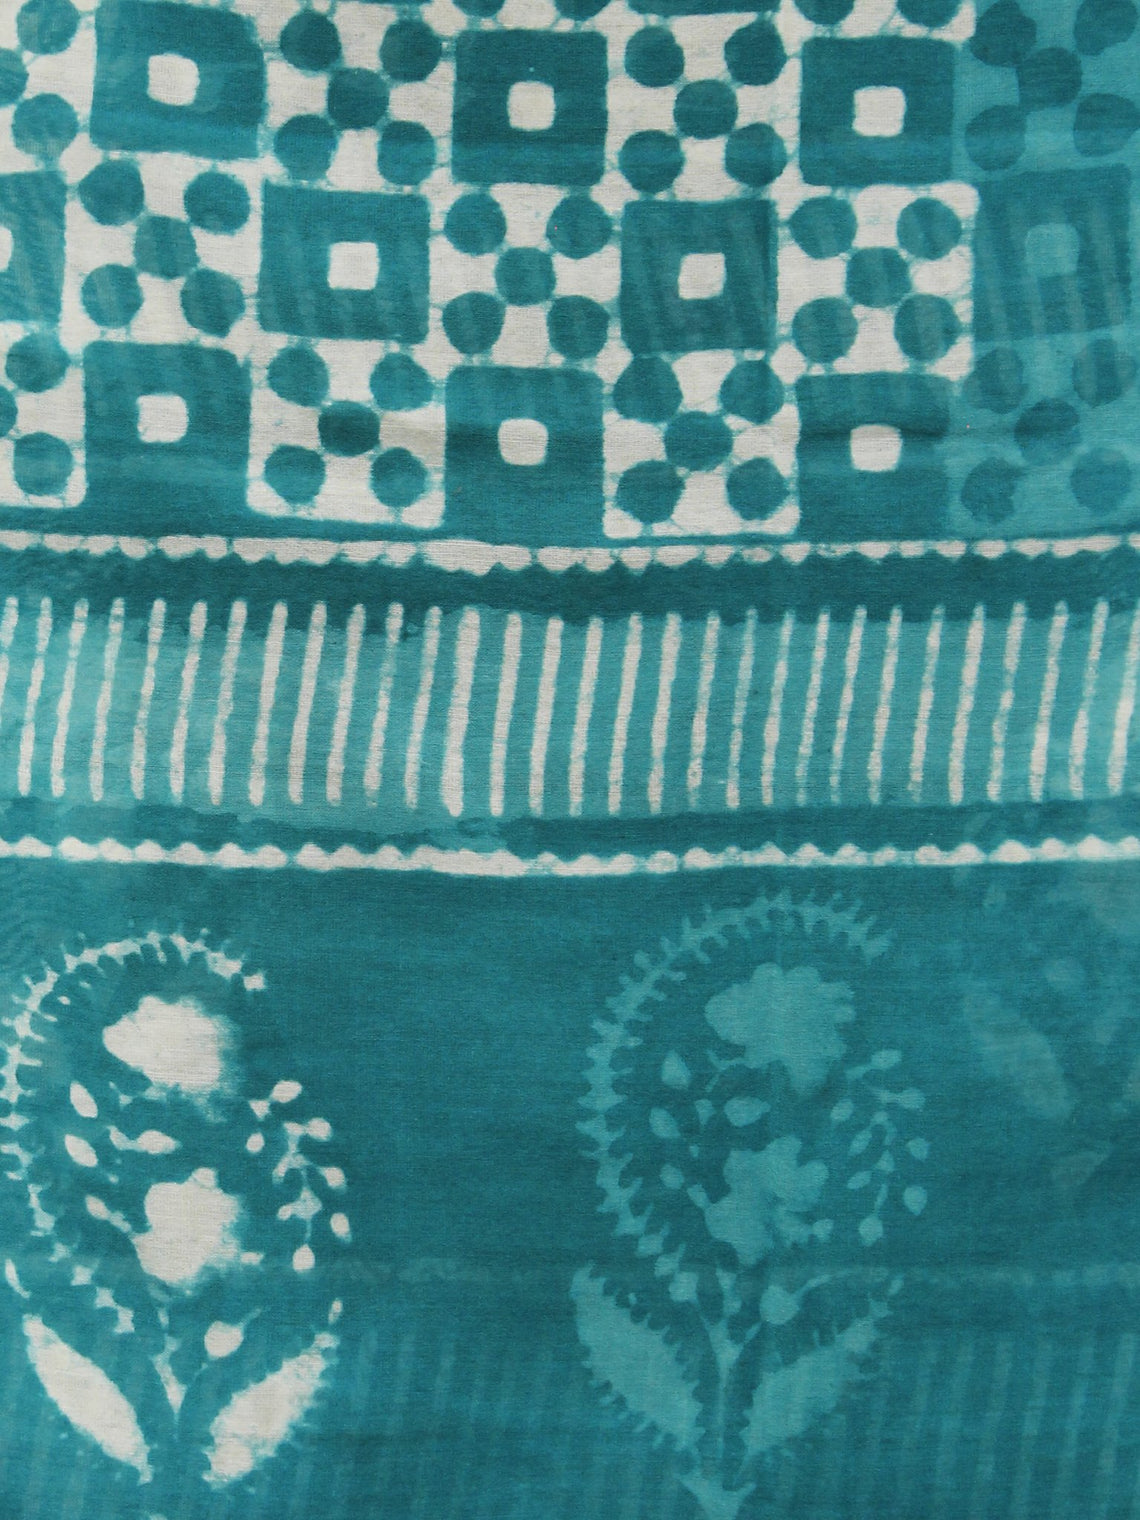 Teal Blue Ivory  Chanderi Hand Black Printed & Hand Painted Dupatta - D04170257